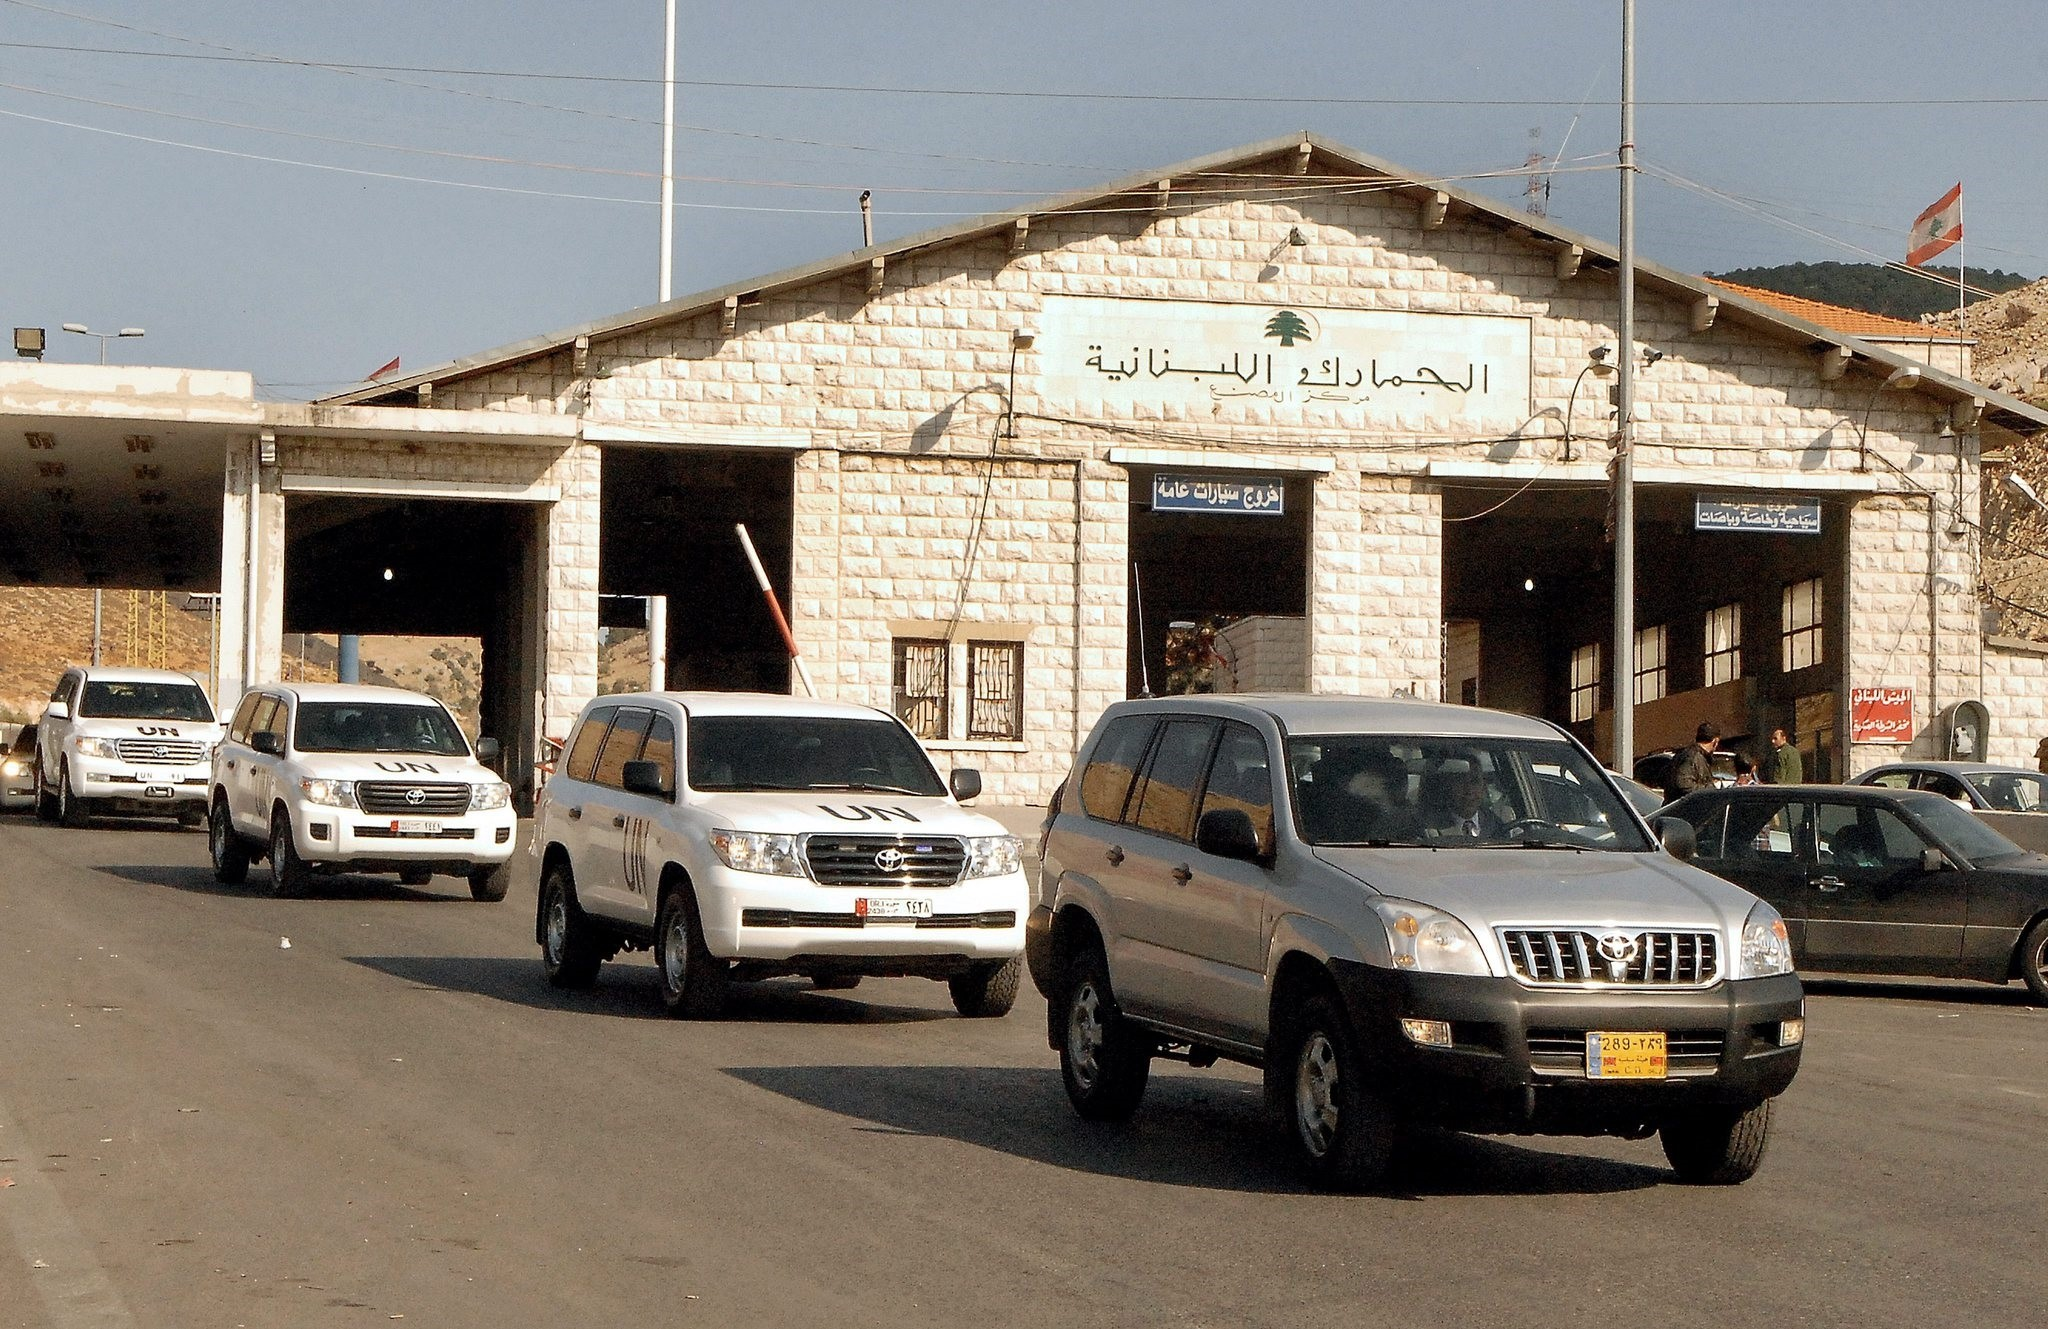 A convoy of U.N. vehicles carrying the U.N. team of inspectors investigating the use of chemical weapons in Syria crossing into Lebanon from Syria, Sept. 30, 2013.